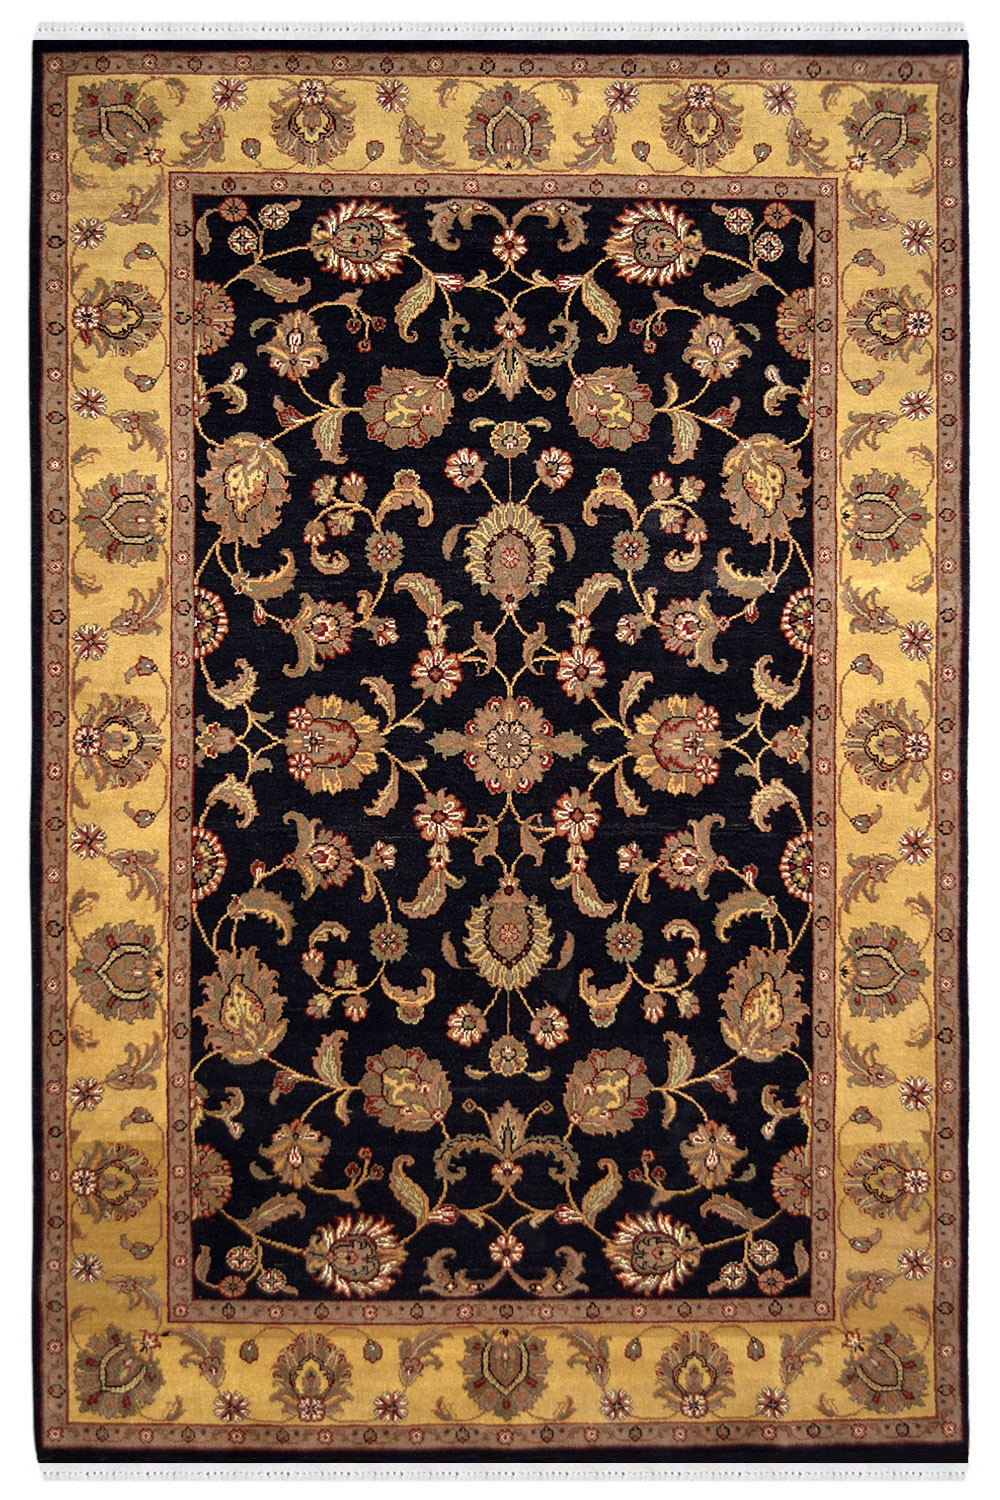 Buy Eye Catchy Floral Jaal Black Hand Knotted Carpet At